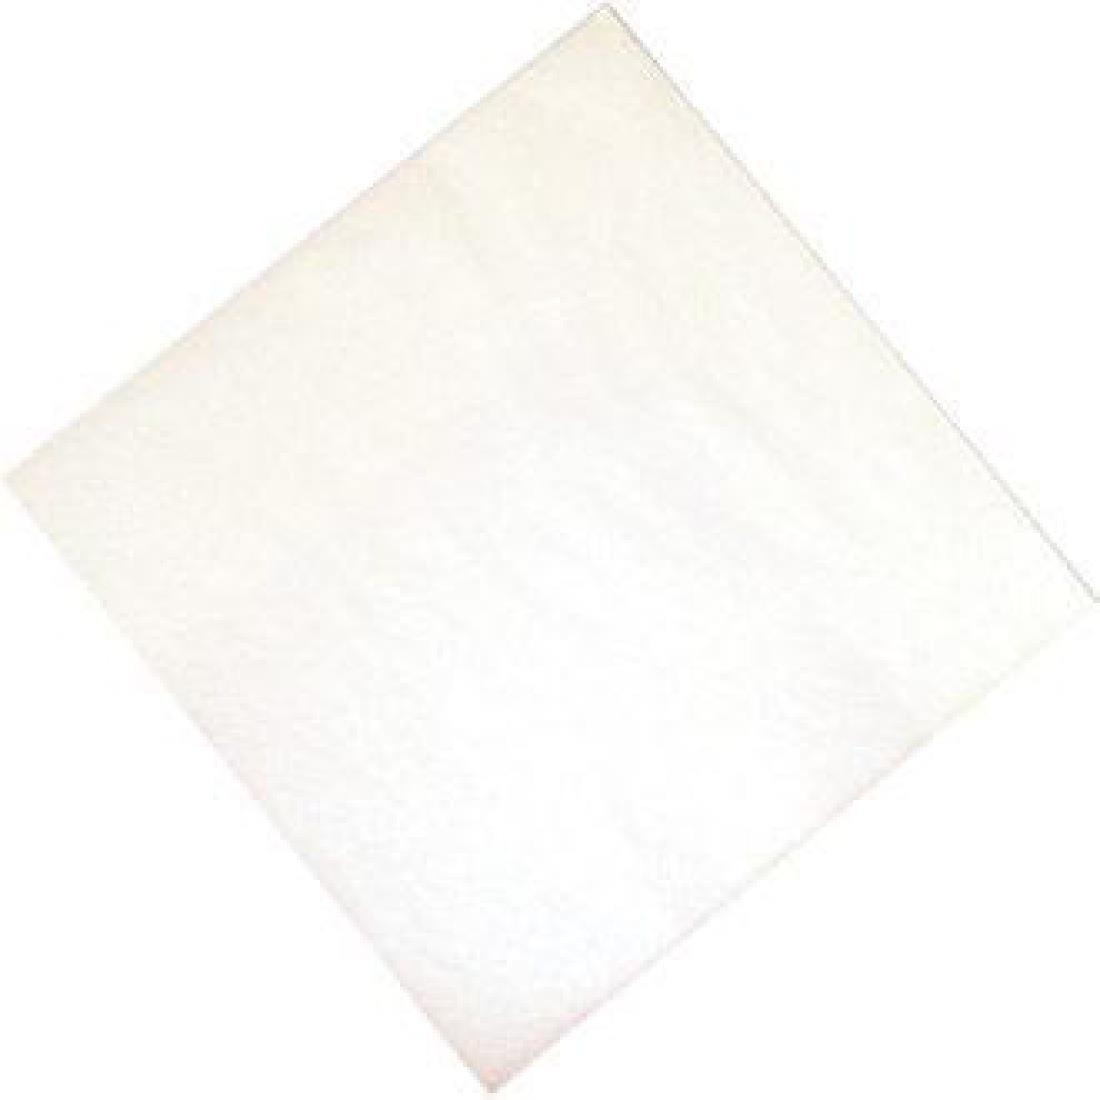 Image of Fasana Dinner Napkins White 400mm (Pack of 1000) Pack of 1000